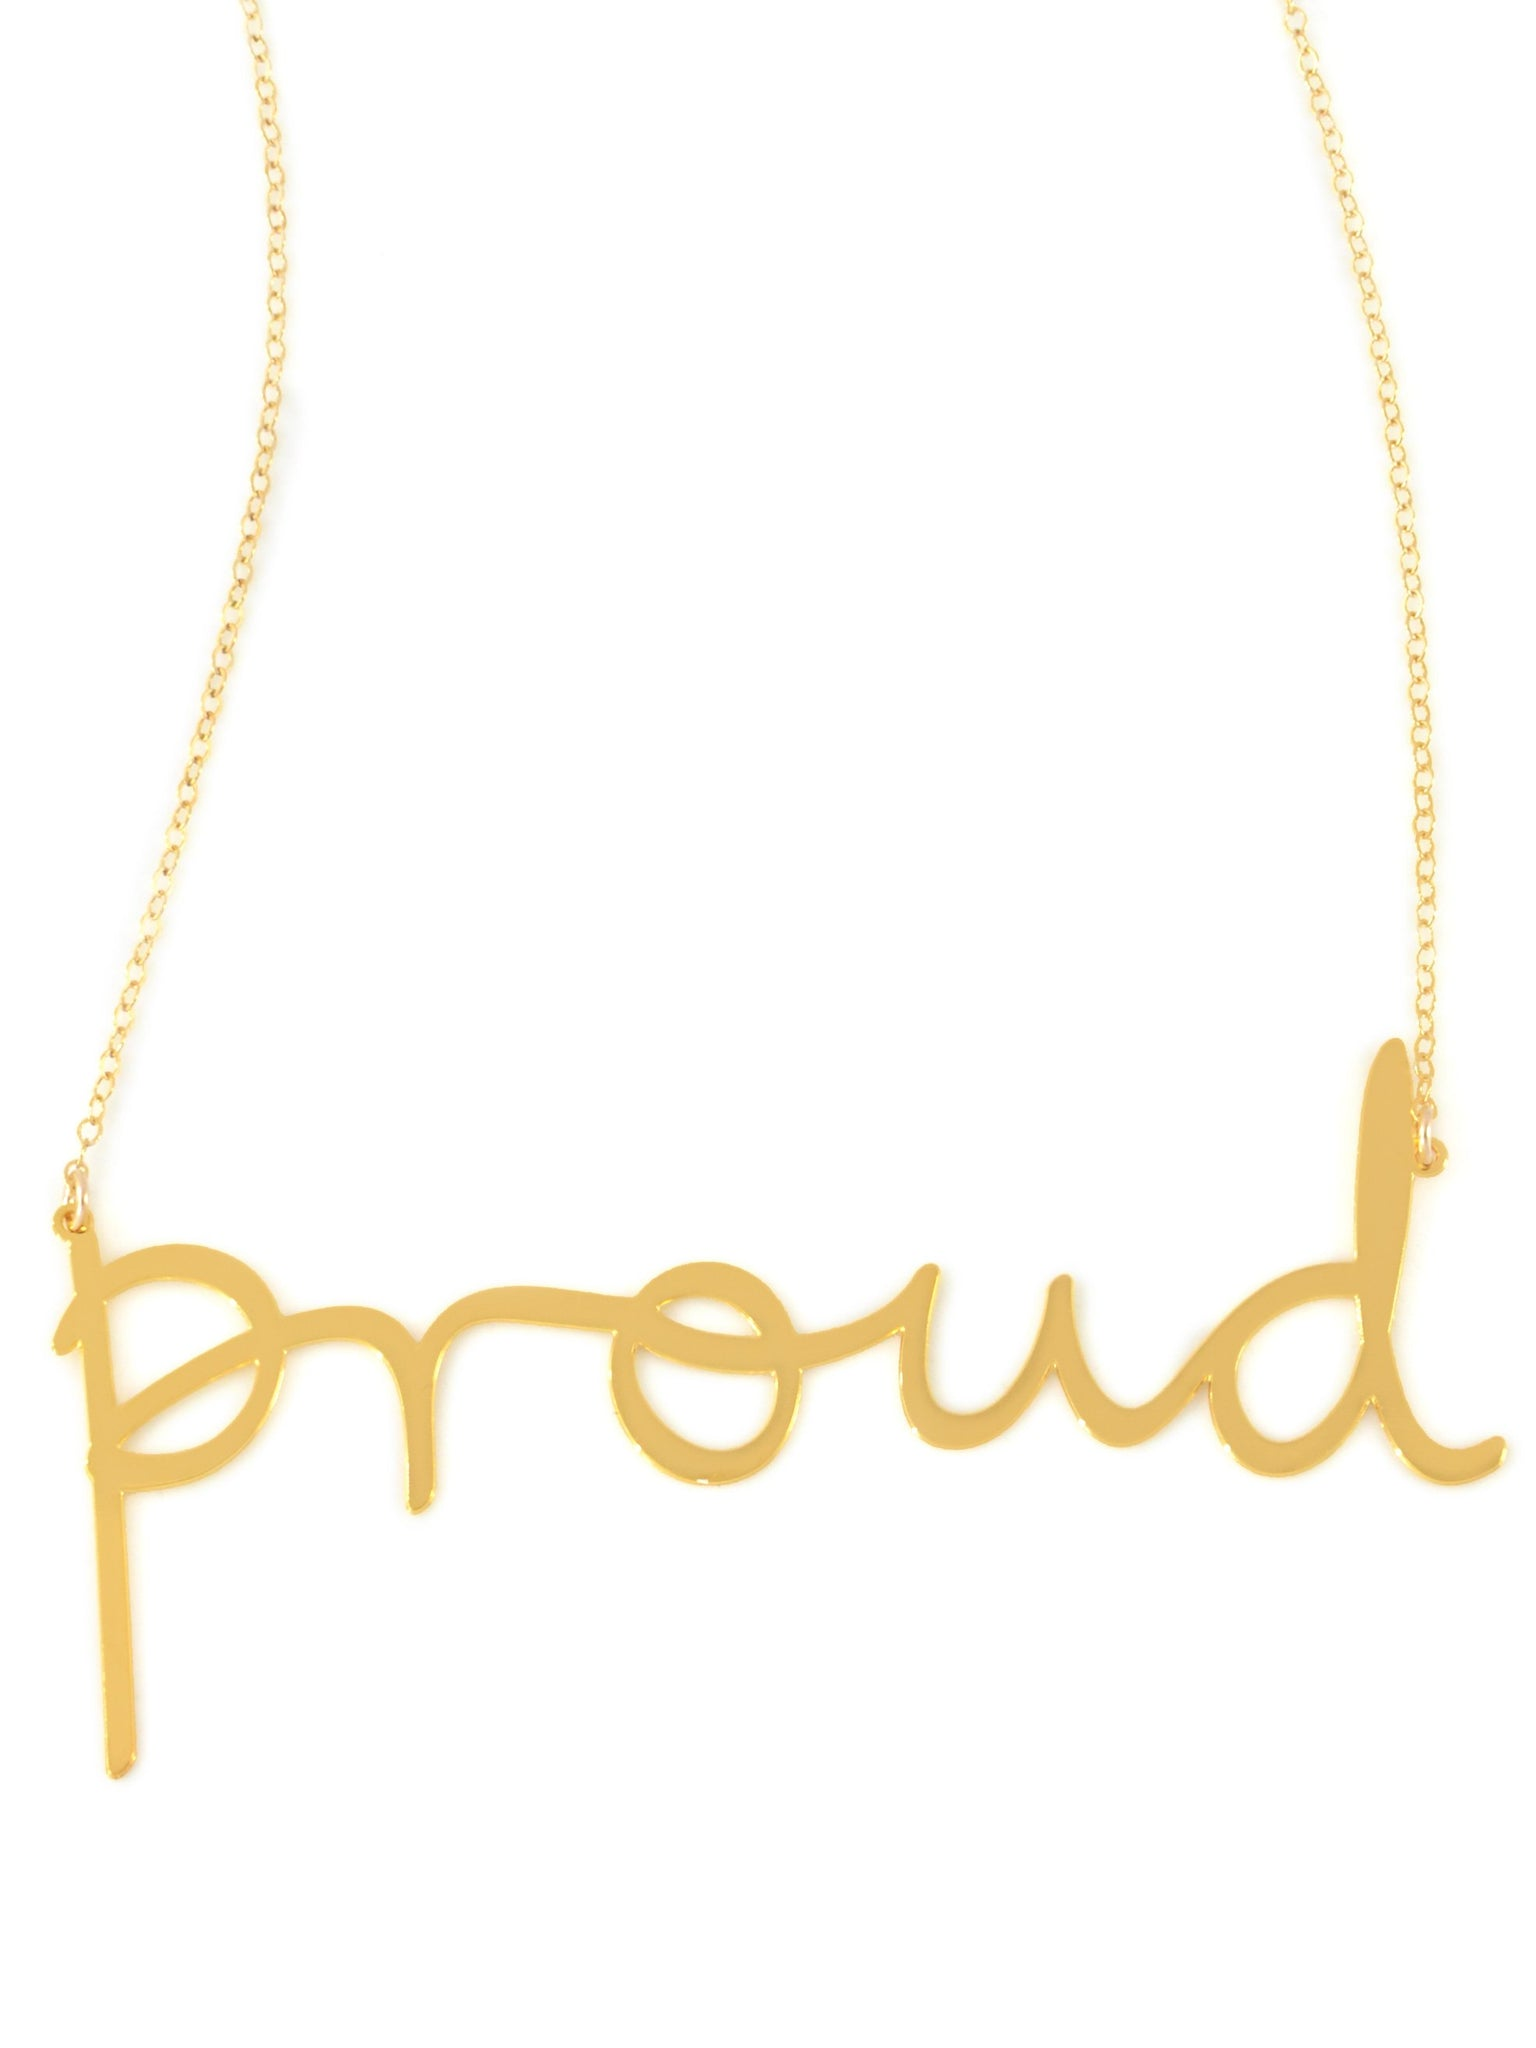 Proud Necklace - Brevity Jewelry - Made in USA - Affordable Gold and Silver Jewelry